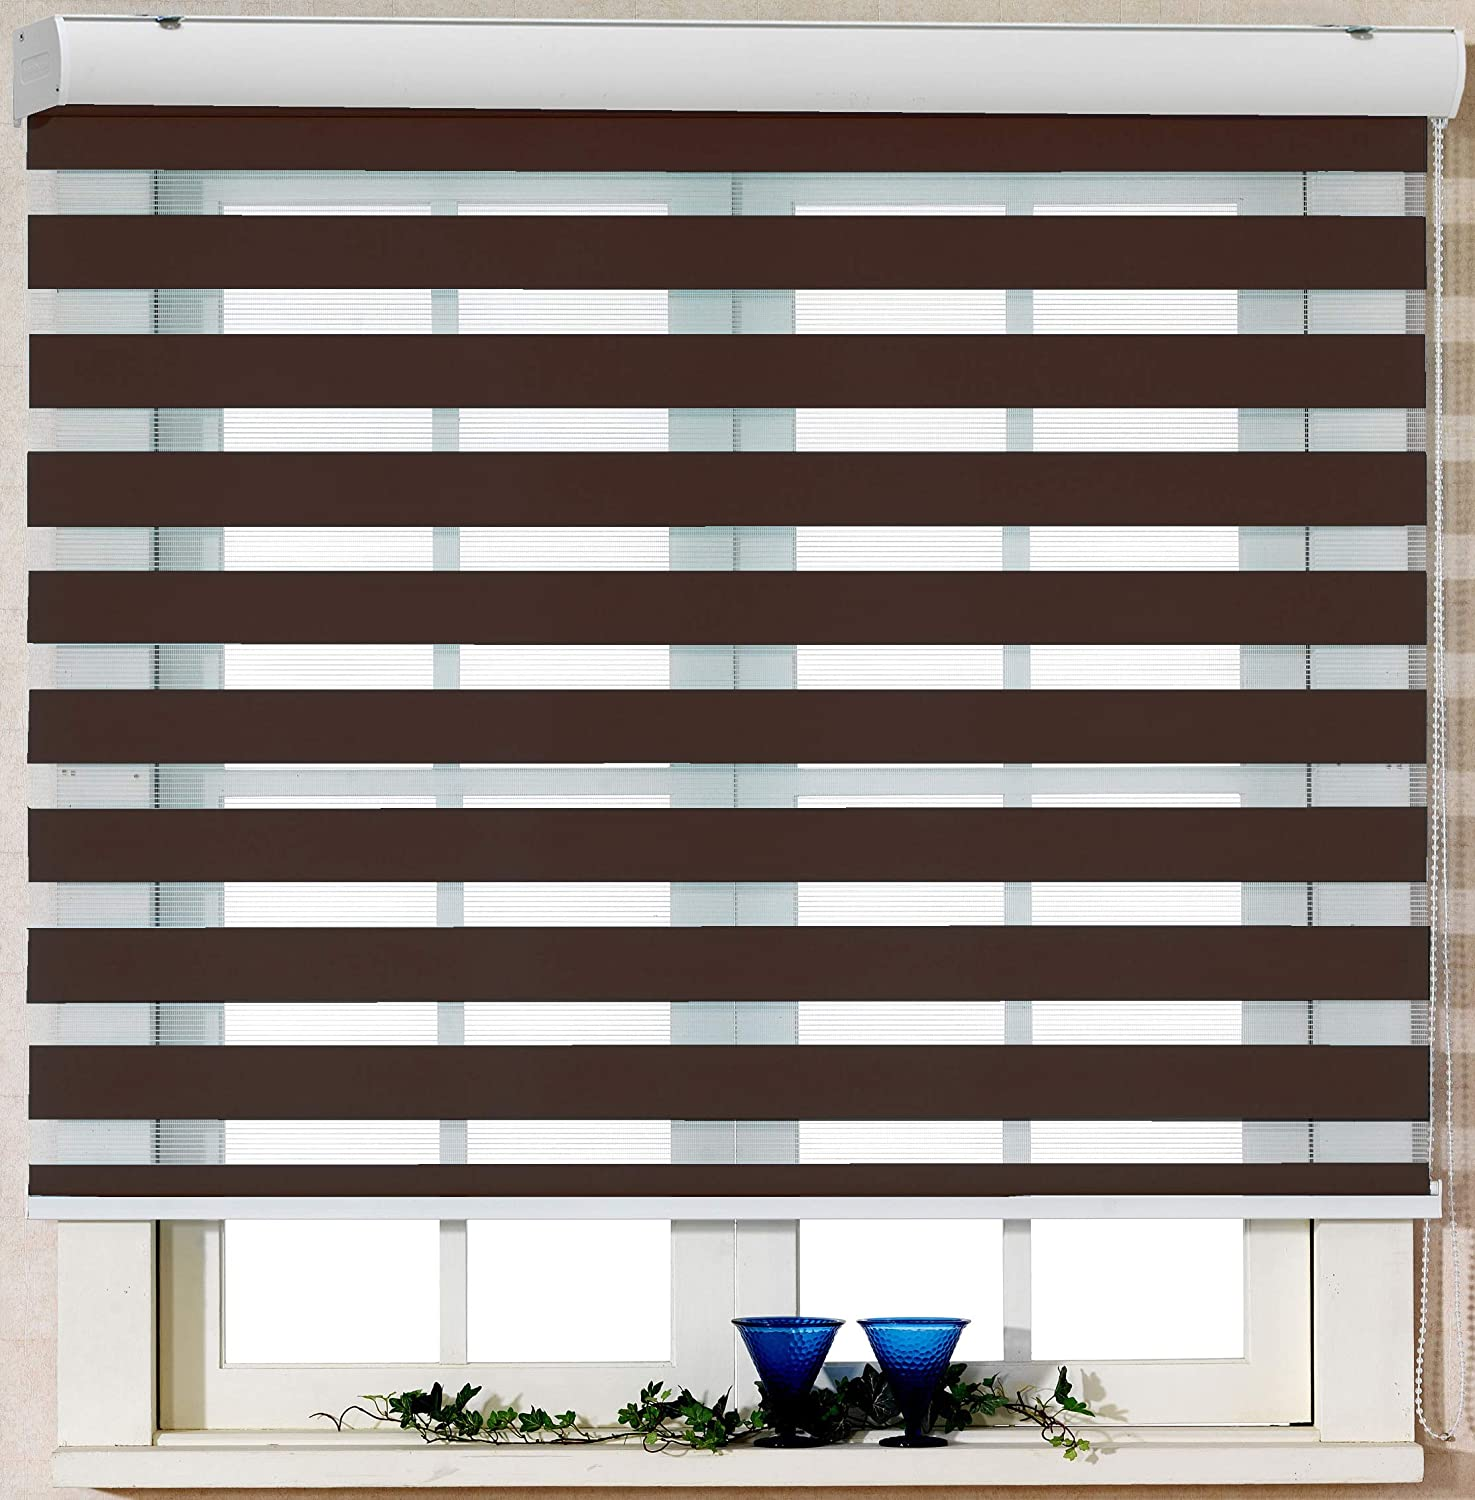 Foiresoft Custom Cut to Size, [Winsharp Basic, Mocha, W 47 x H 47 inch] Zebra Roller Blinds, Dual Layer Shades, Sheer or Privacy Light Control, Day and Night Window Drapes, 20 to 110 inch Wide